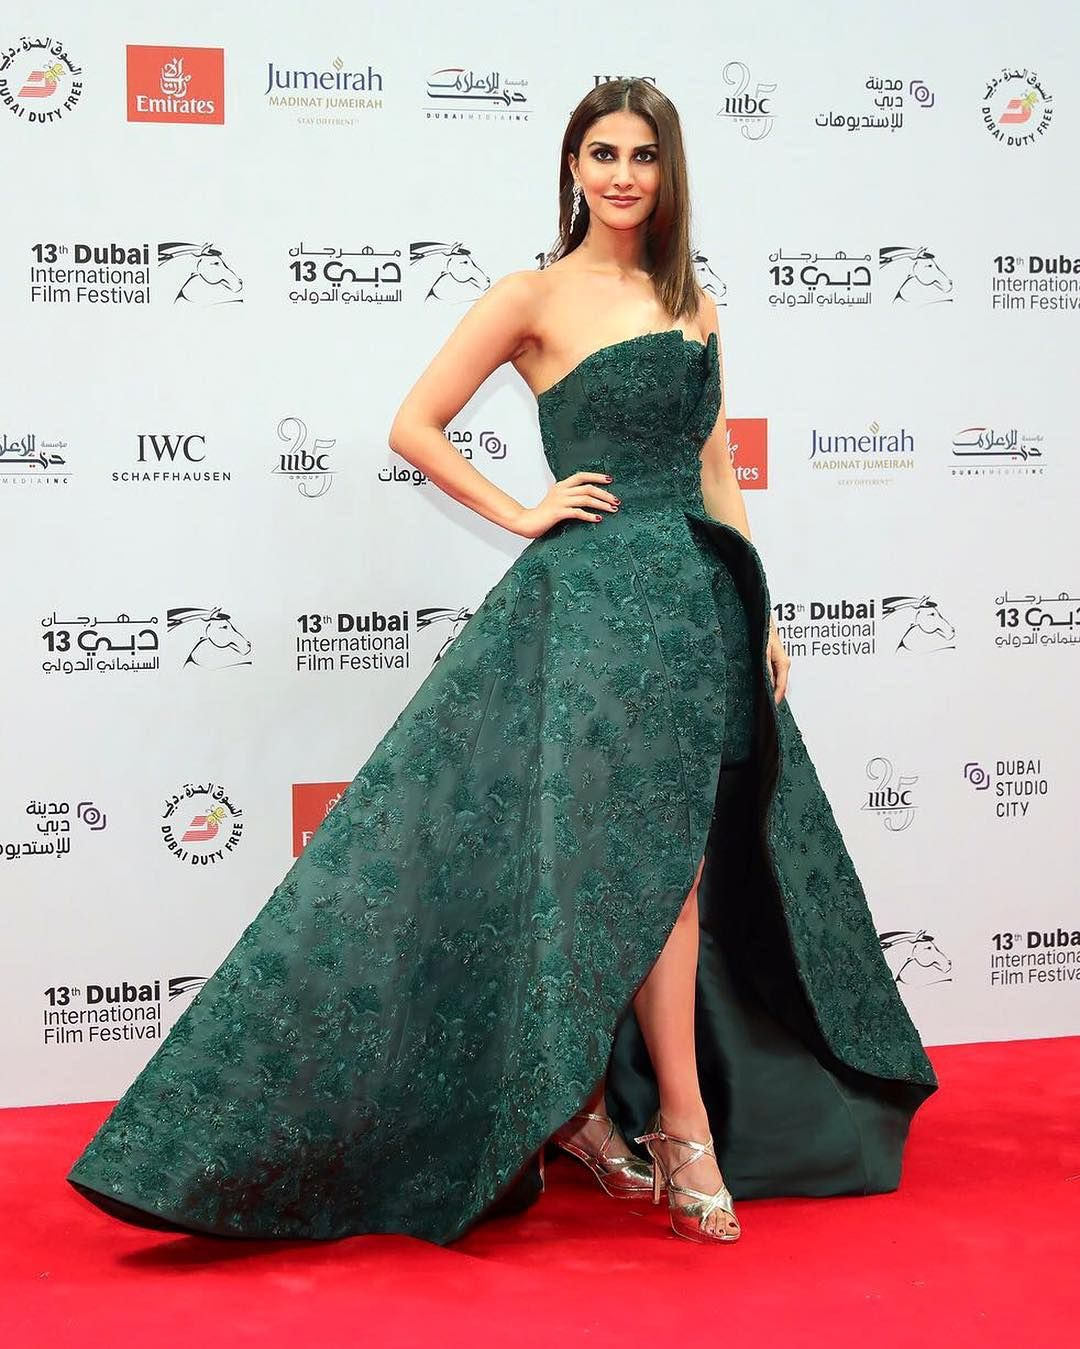 Bollywood Actress Vaani Kapoor Graced The Red Carpet At The Dubai International Film Festival Celebrity Gowns Celebrity Inspired Dresses Lace Evening Dresses